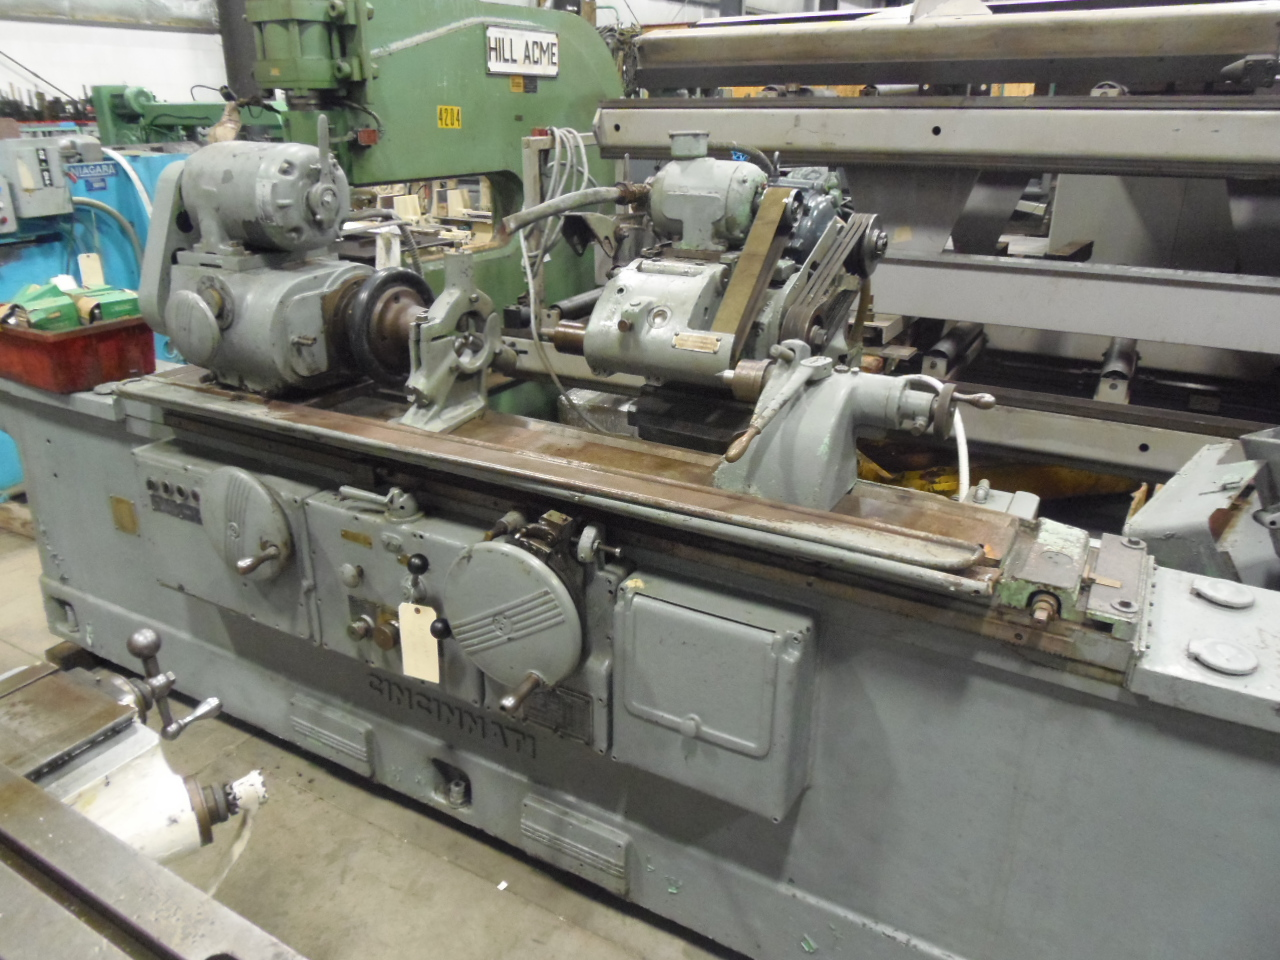 12 X 48 CINCINNATI UNIVERSAL, 5300 RPM SWING DOWN ATTACHMENT,